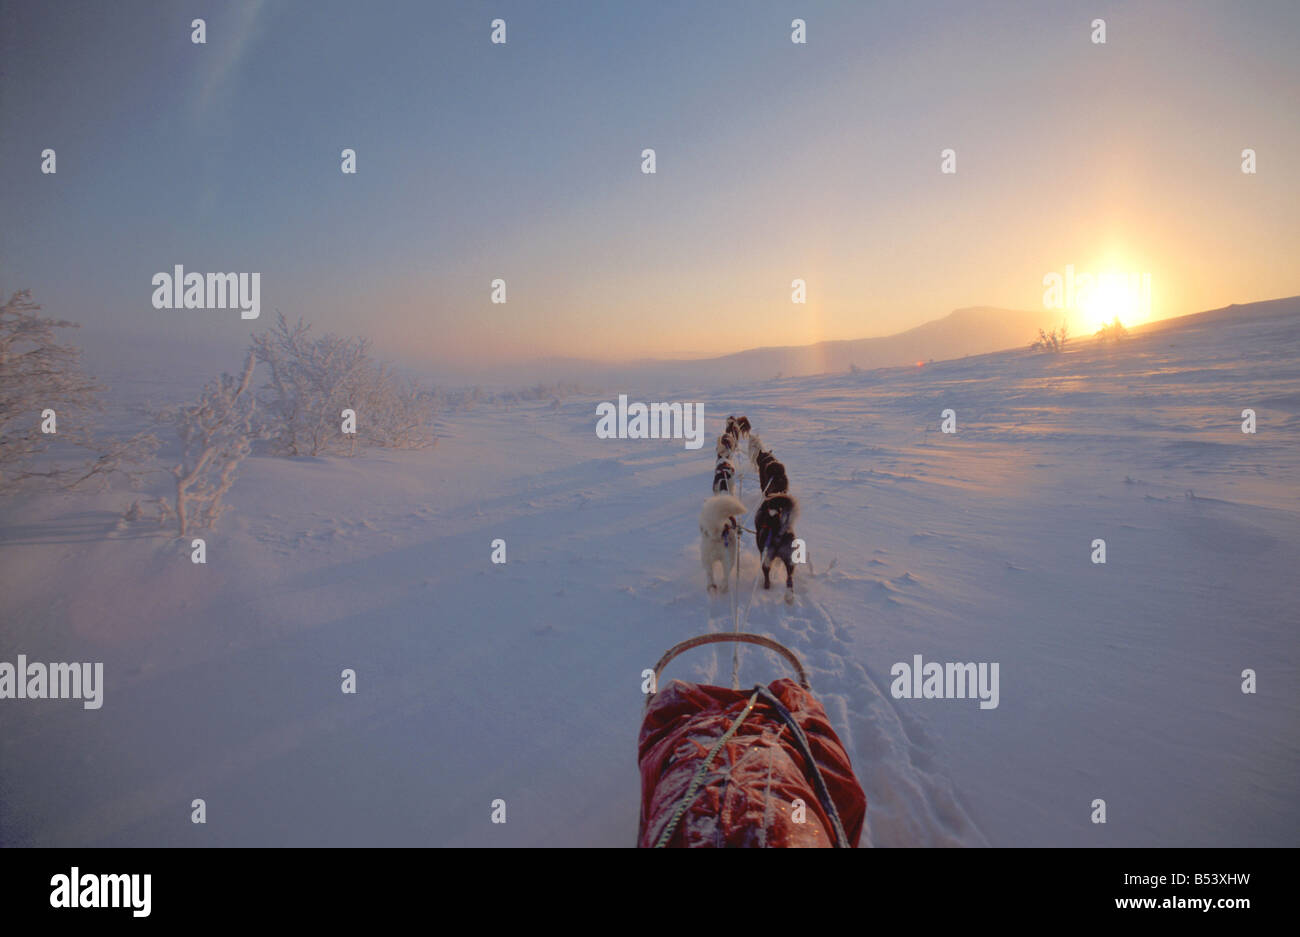 huskies - pulling sledge in polar night - Stock Image